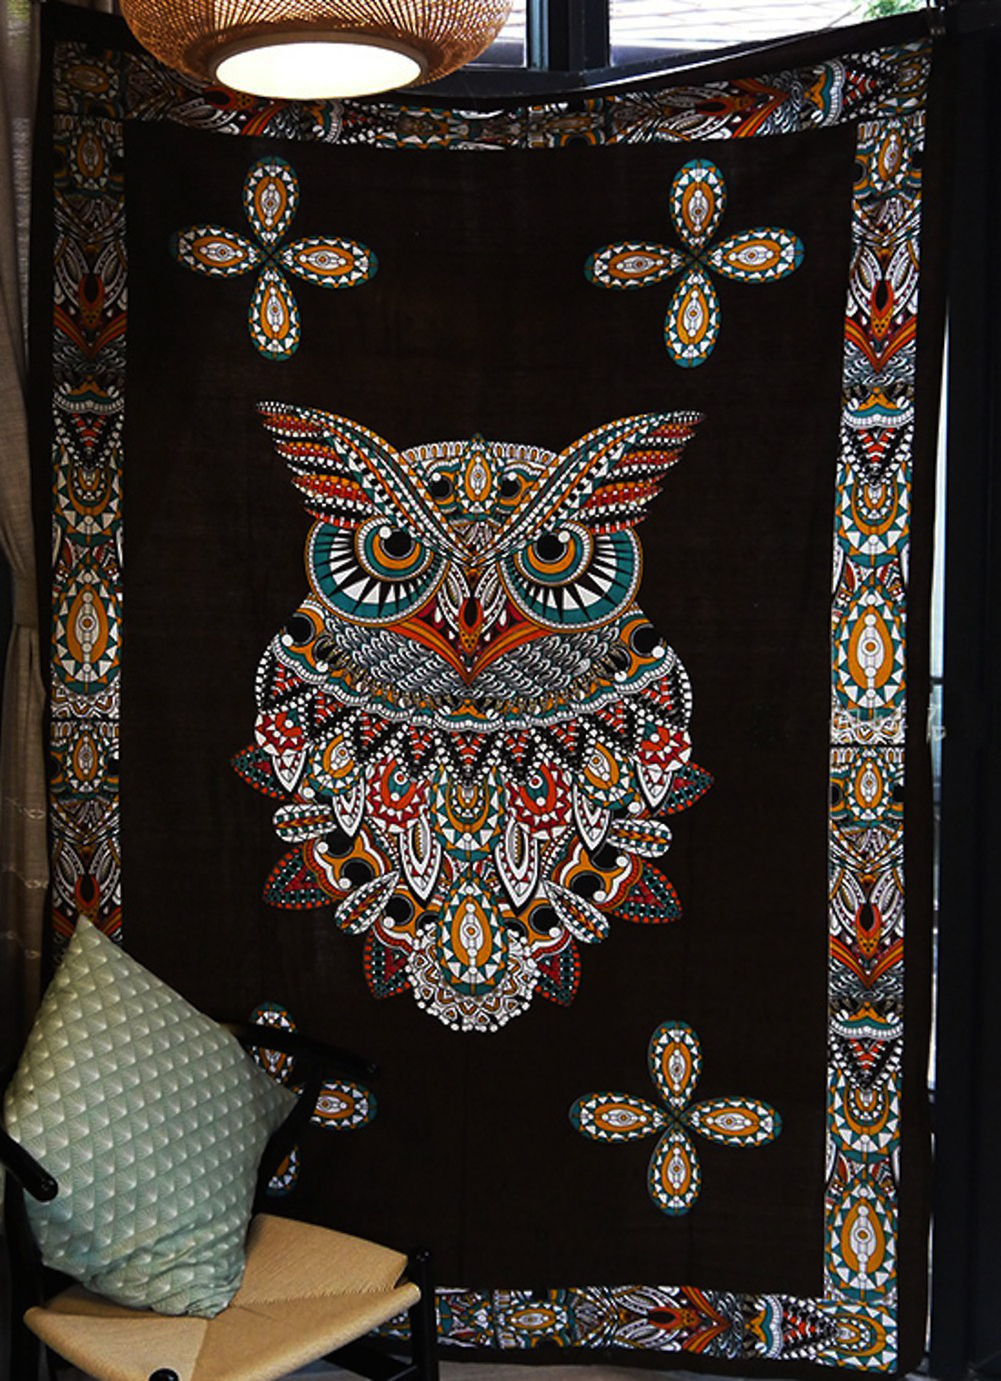 Enipate Indian Bohemia Mandala Tapestry Totem Owl Wall Tapestry Beach Towel Yoga Pad Blanket Camping Mattress Pad 200x150cm